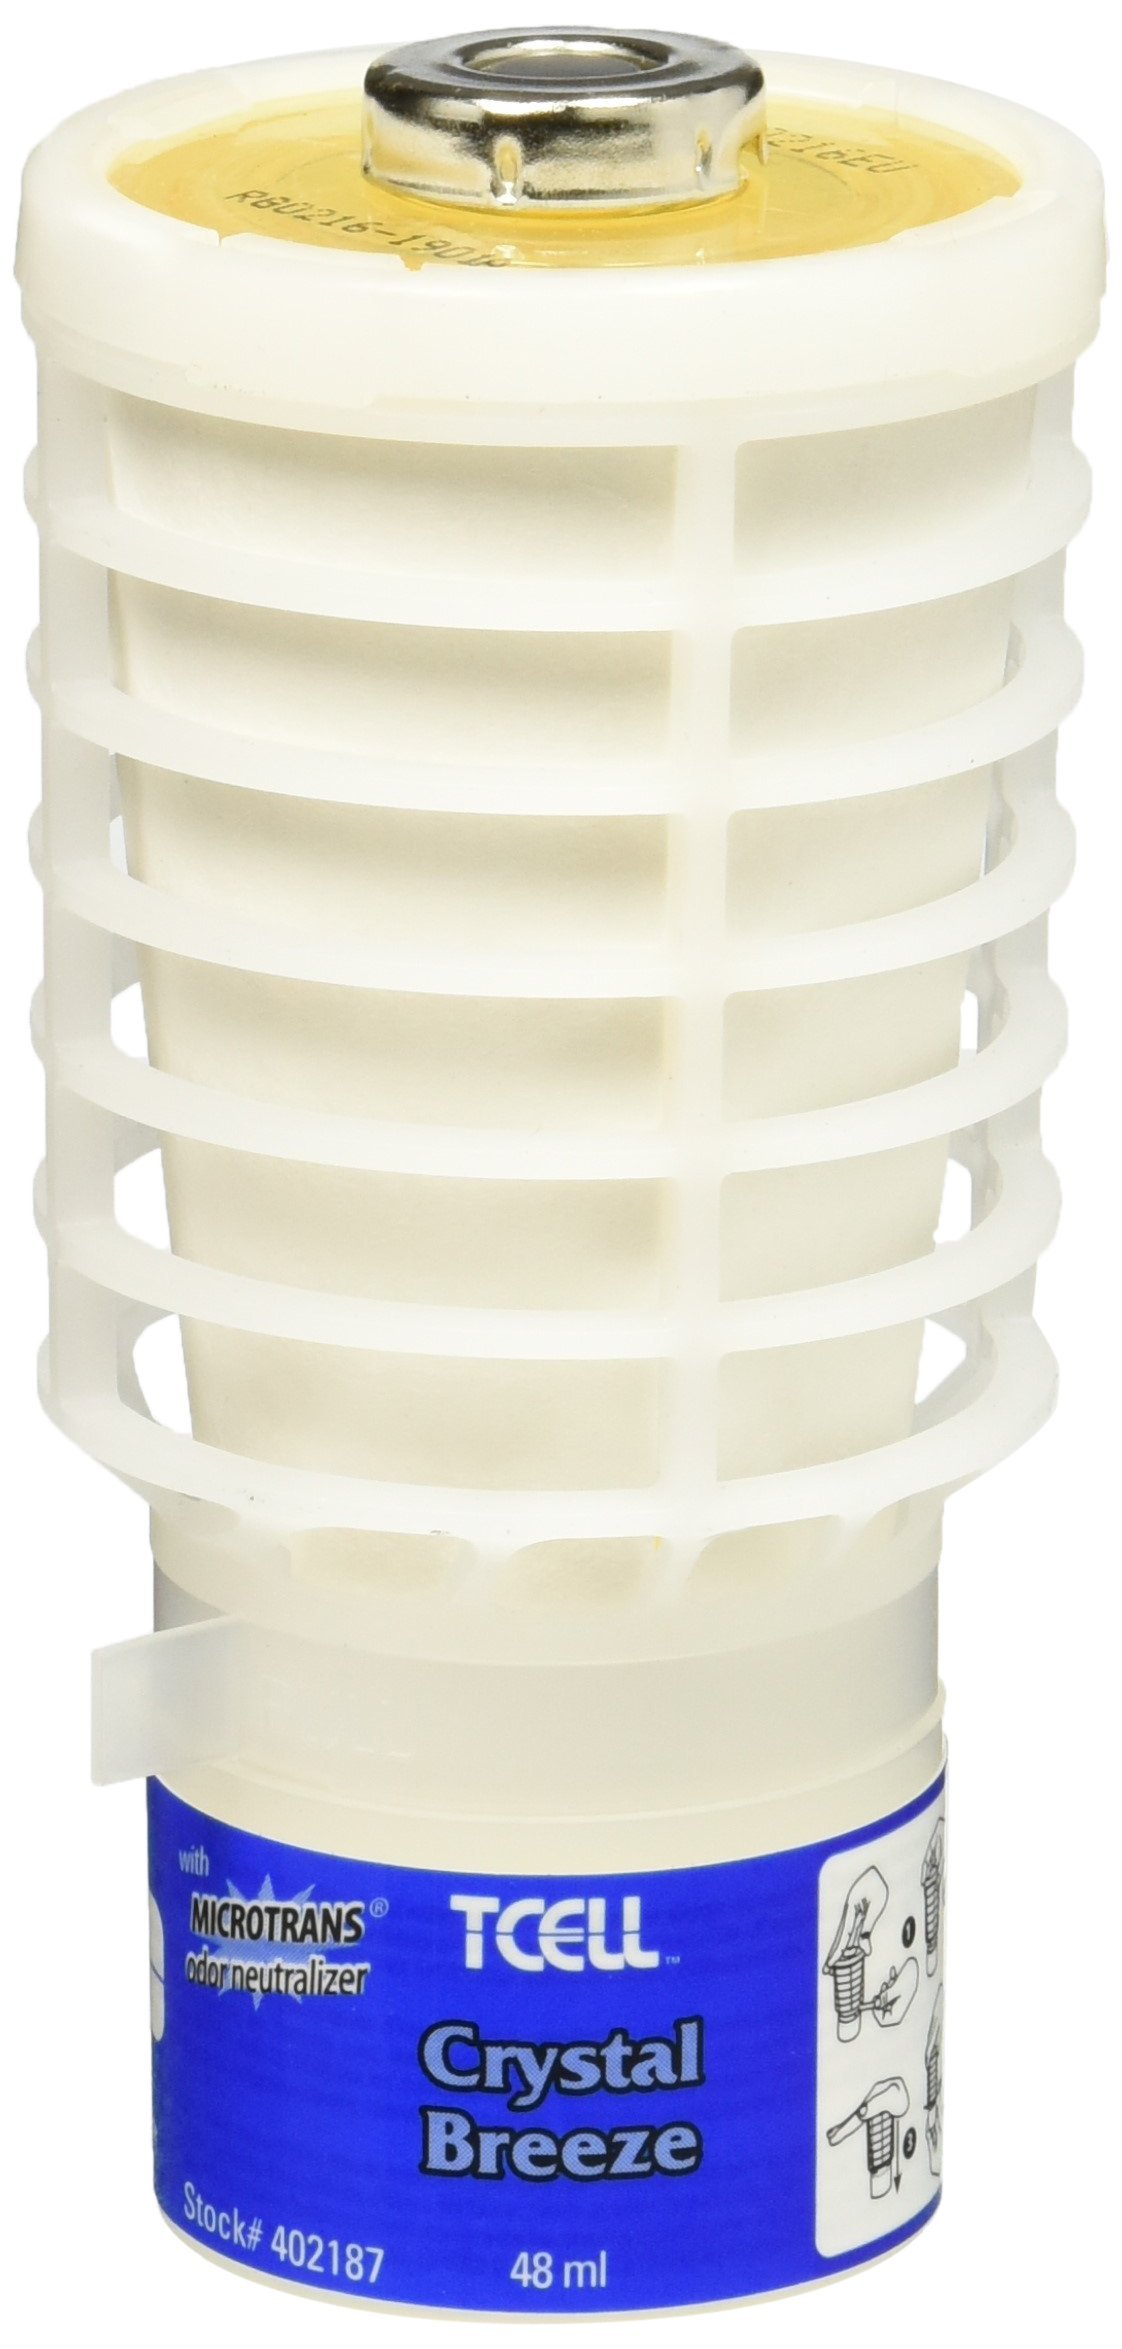 Rubbermaid Commercial TCell Odor Control System Refill, Crystal Breeze, FG402187 by Rubbermaid Commercial Products